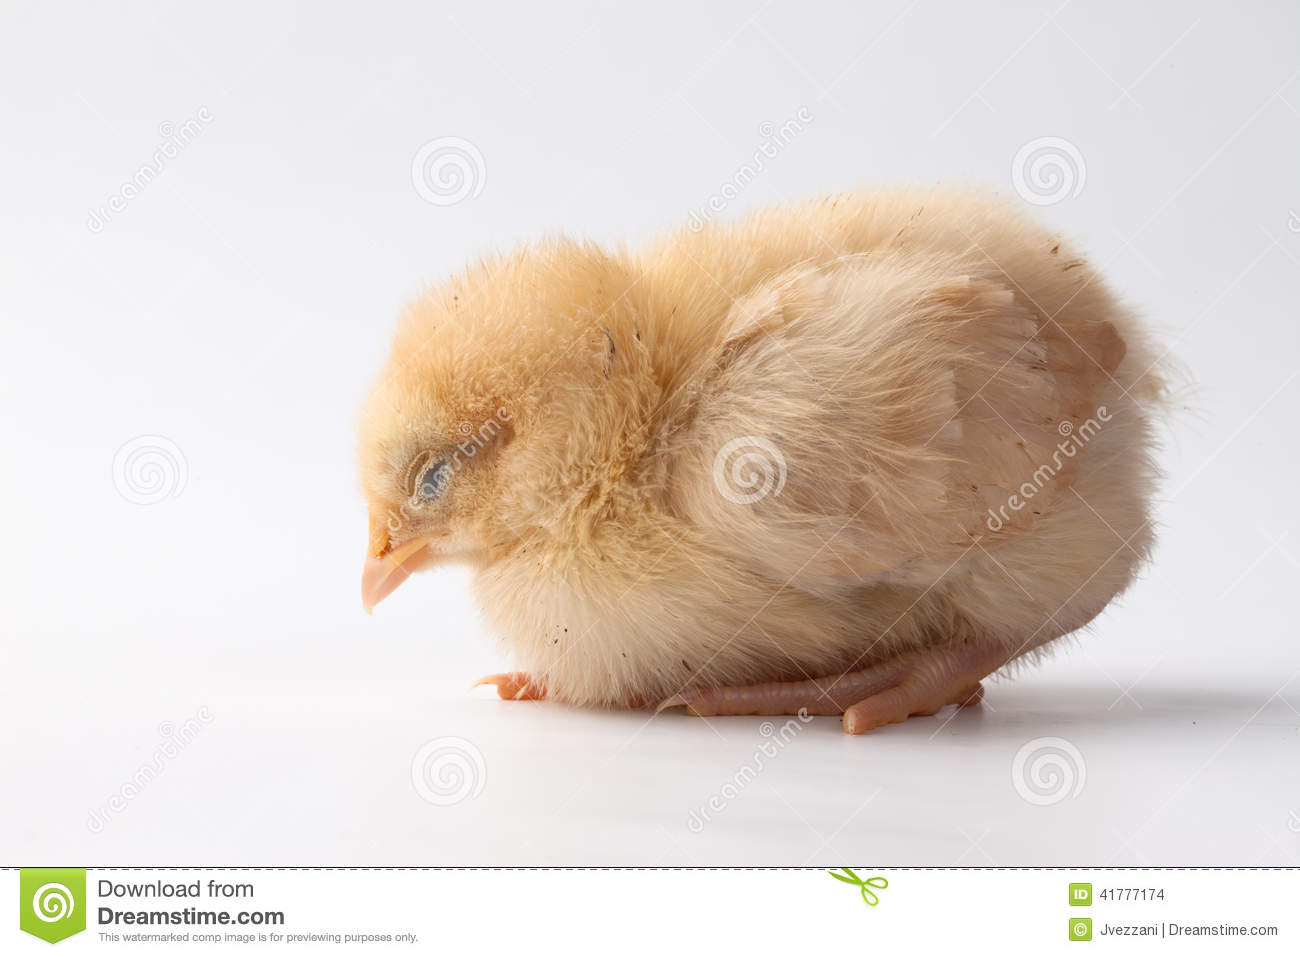 ... yellow Buff Orpington baby chick sleeping on a white background